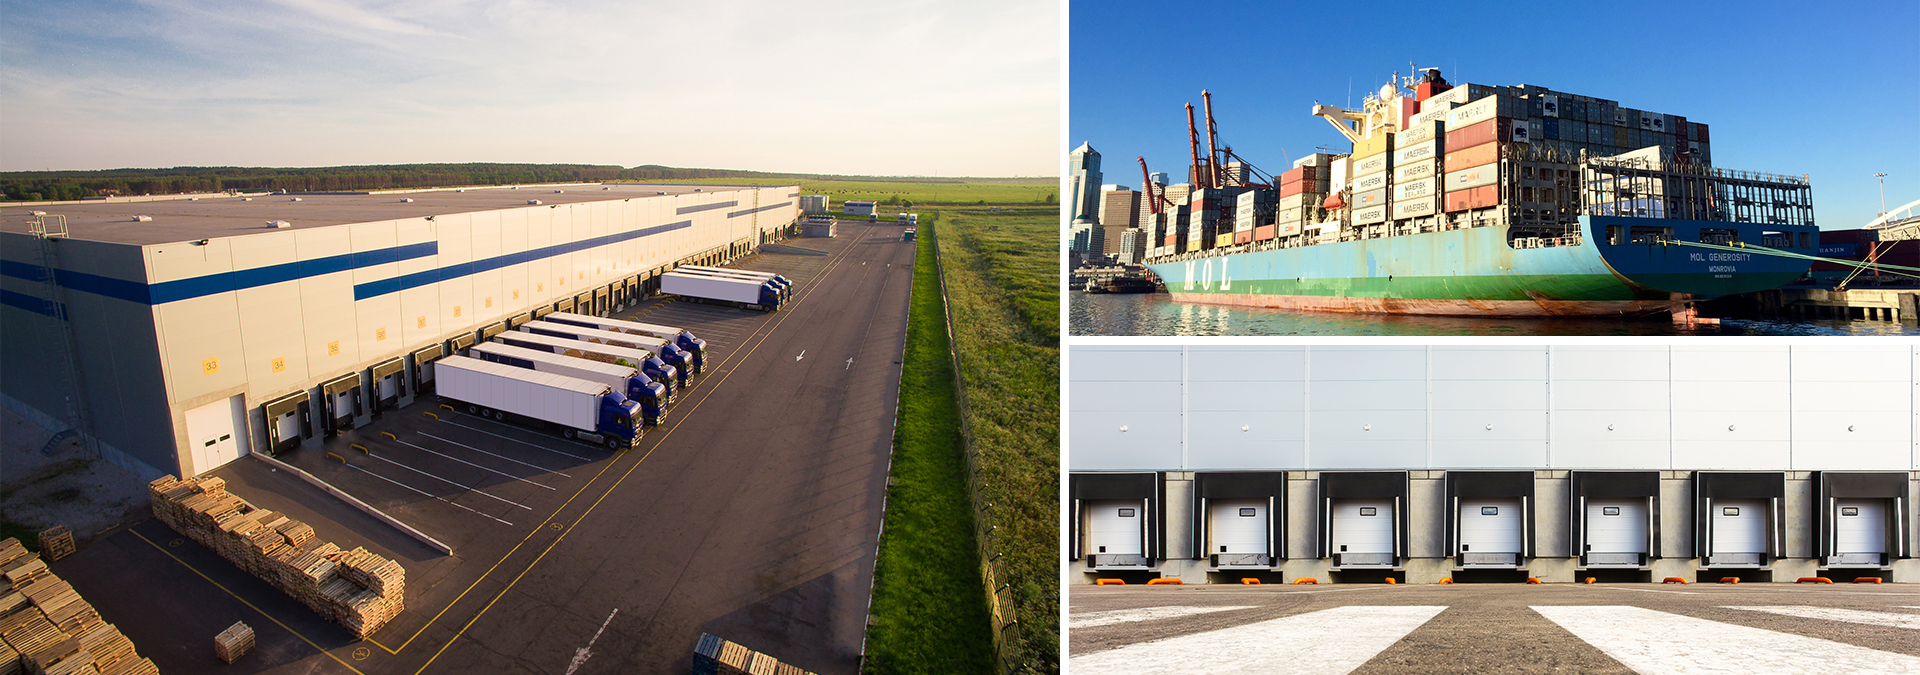 Industrial Images Building, Loading Doors, Shipping